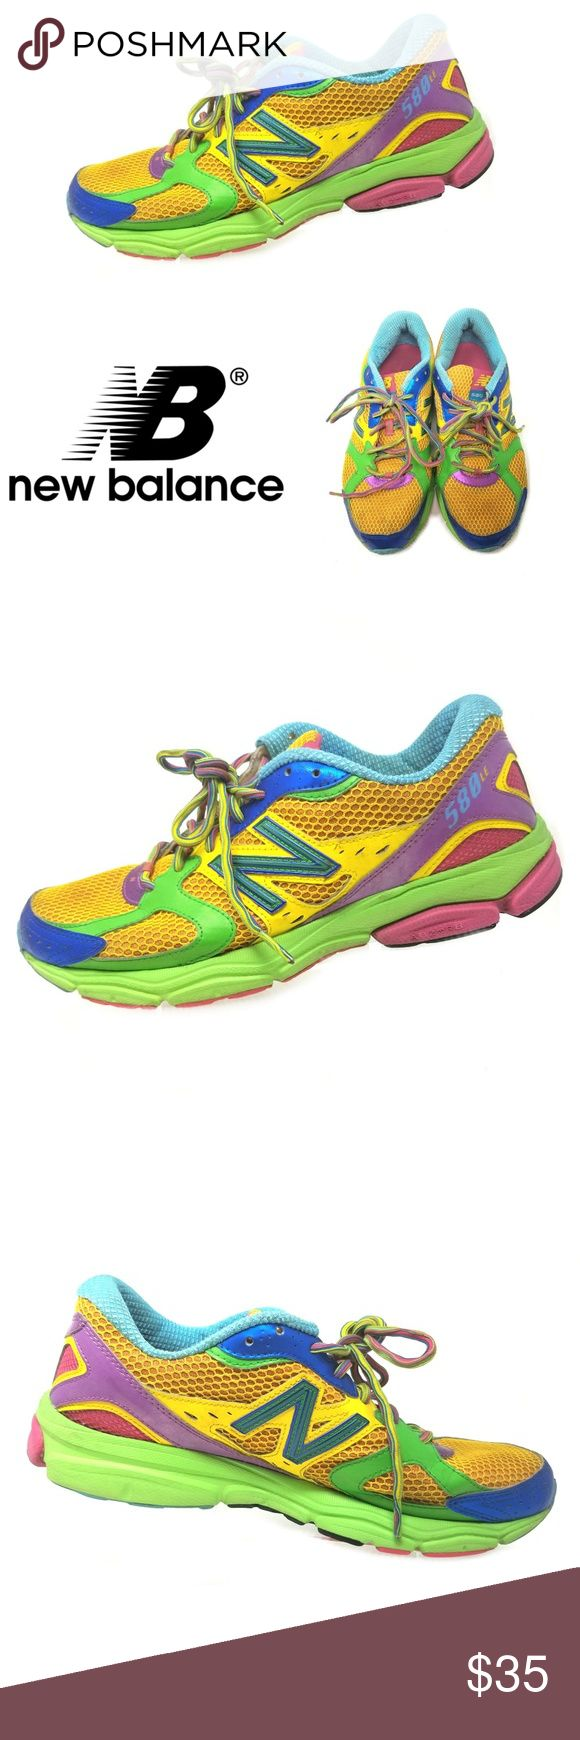 """New Balance 580 LE Women's Running Shoes Sz 10 New Balance 580 LE Women's Road Rainbow Running Shoes Sz 10 W580RR2  The New Balance 580 offers a chance to experience performance fit and superior comfort in an entry-level running shoe. ABZORB cushioning, a durable outsole and a """"fast"""" aesthetic combine to give the occasional runner a total fit.  Lightweight, mesh-based upper with synthetic reinforcement provides increased breathability and speed  Please see photos for complete condition…"""